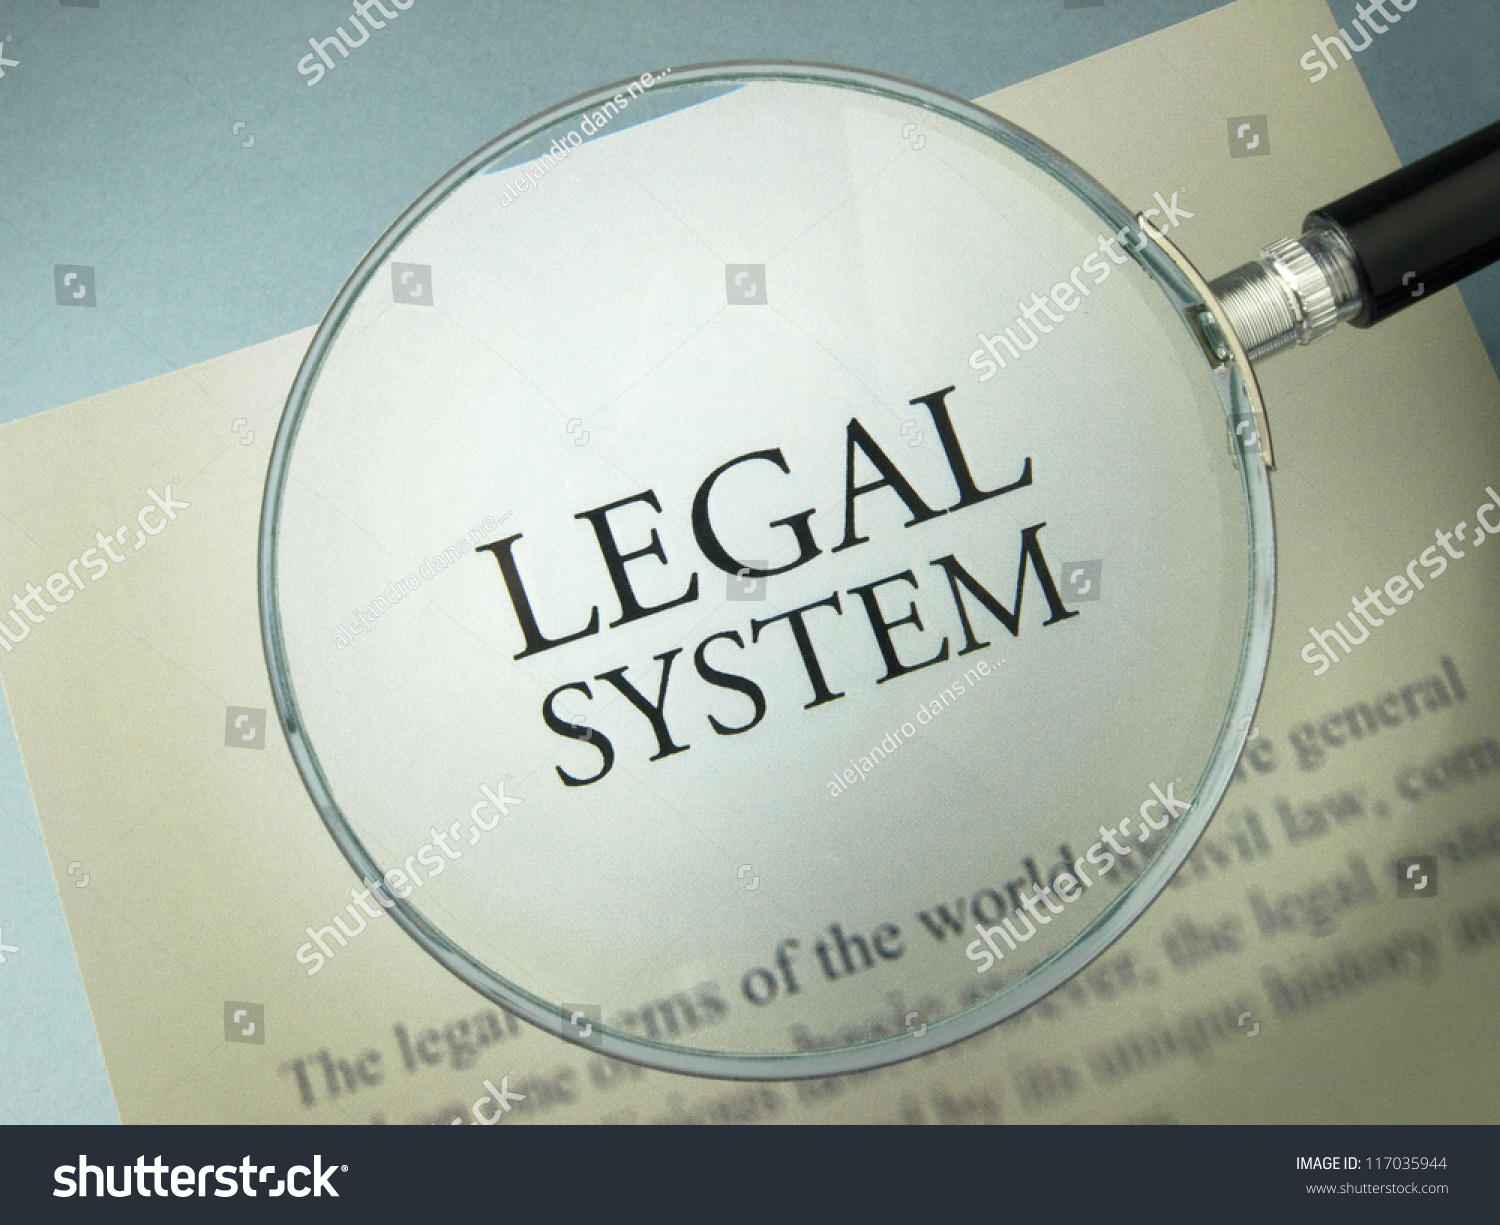 Legal Systems Stock Photo 117035944 - Shutterstock